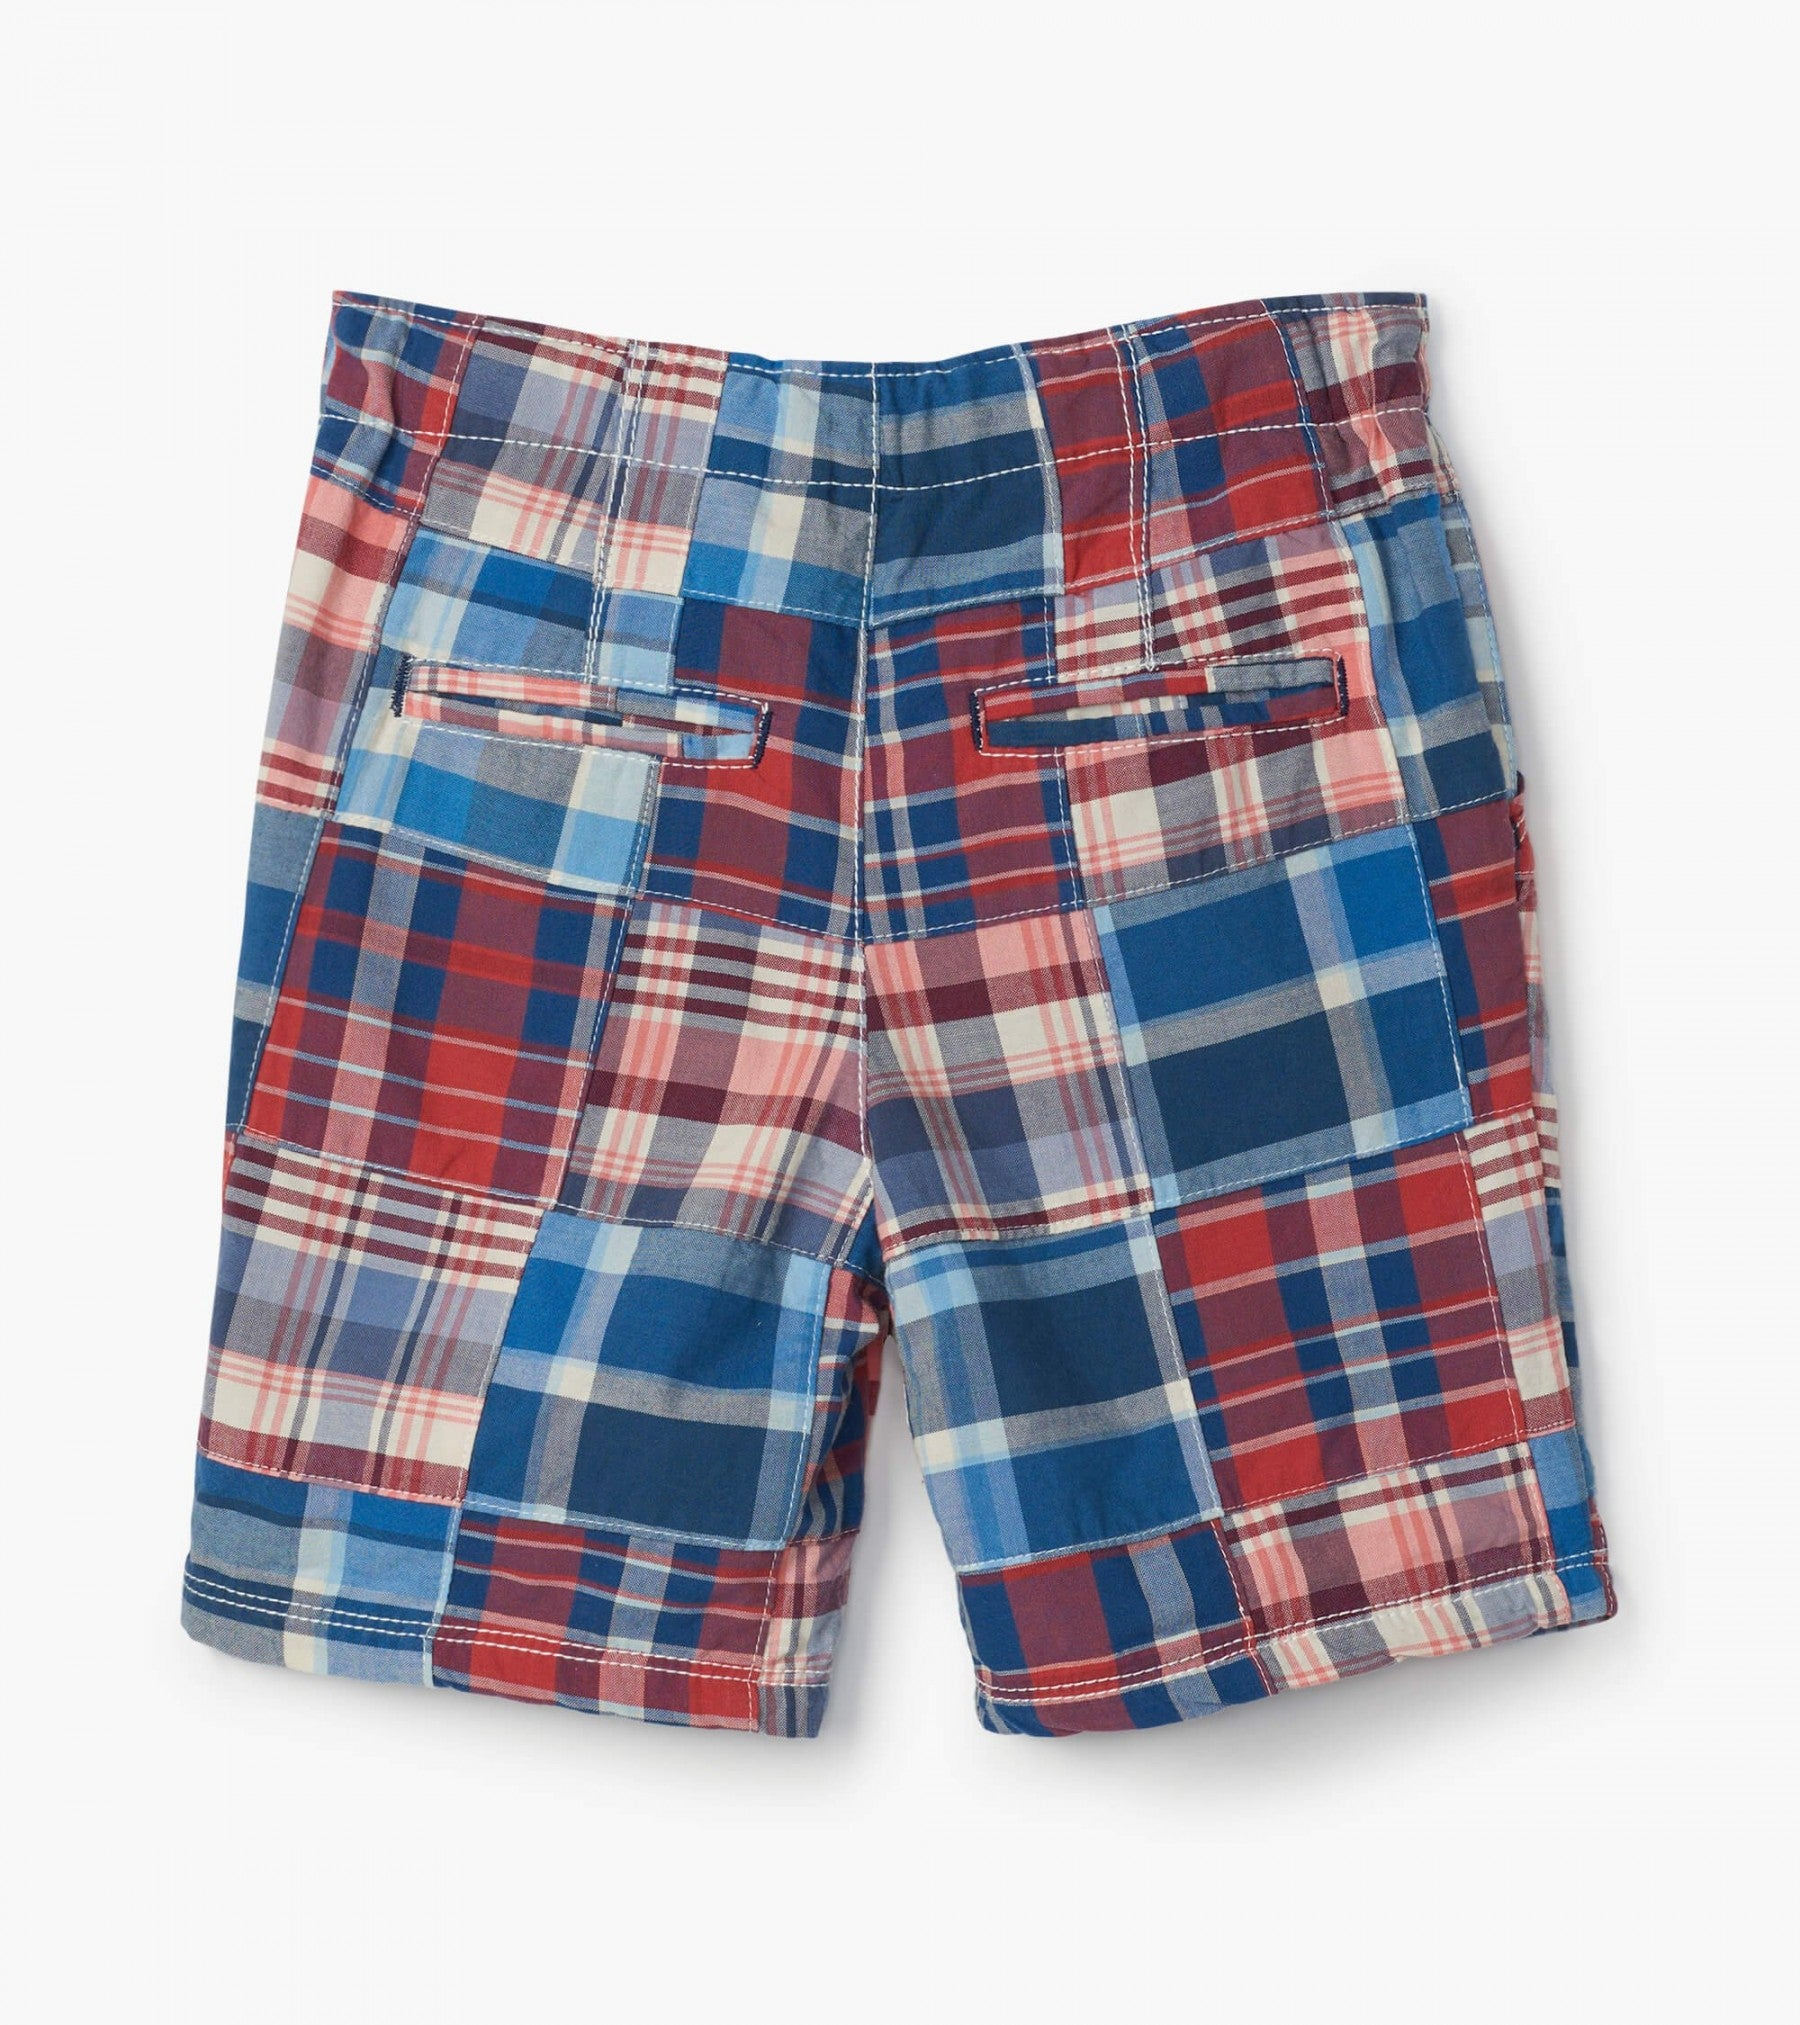 Hatley Madras Plaid Shorts SALE